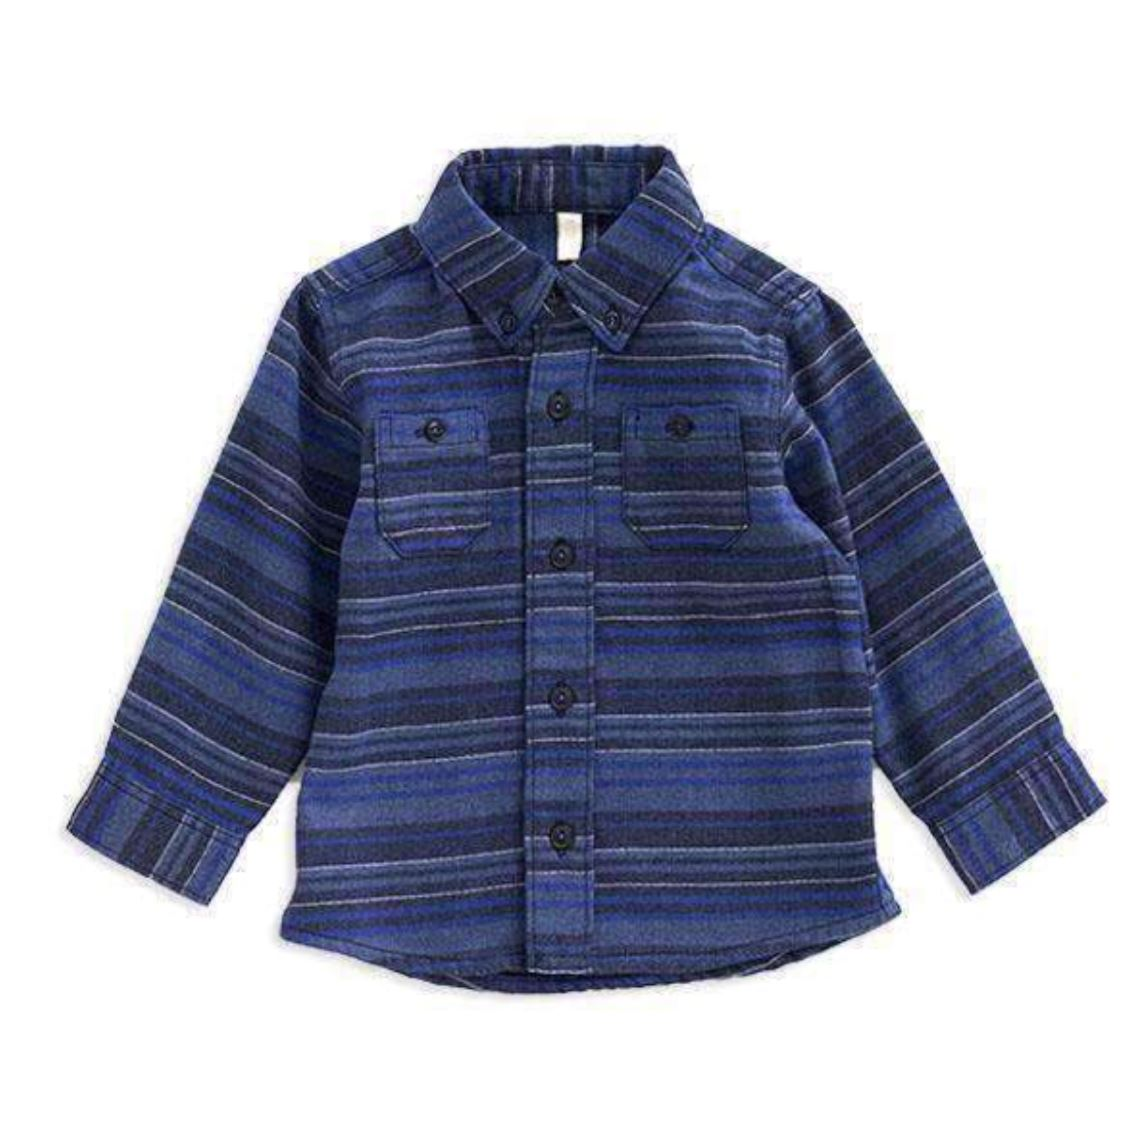 Bitz Kids - Striped Navy Blue Flannel Button Down Boys Shirt Long Sleeve Shirts BItz Kids